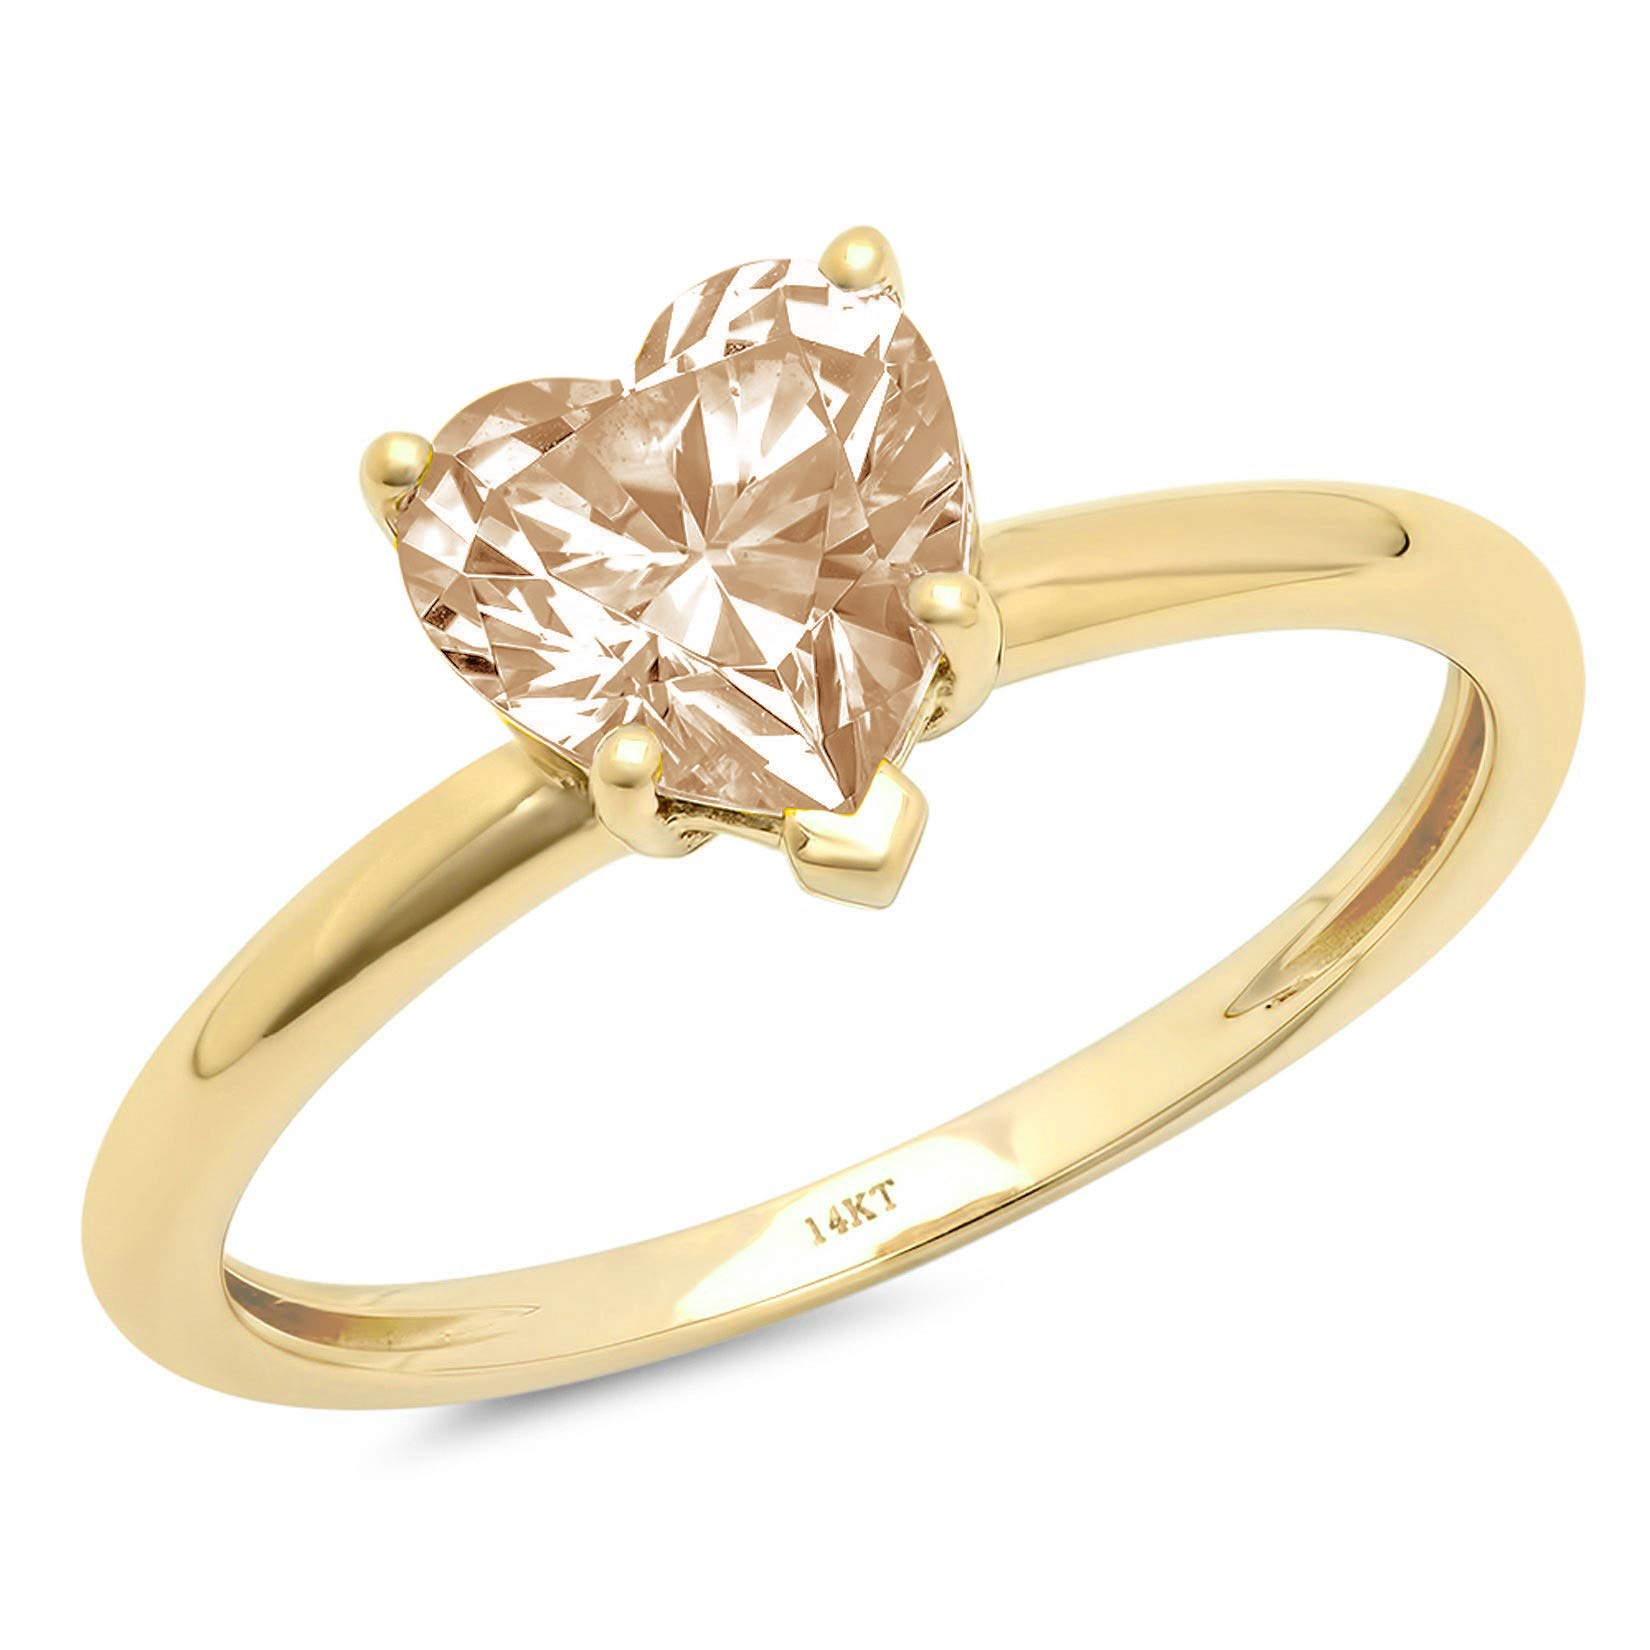 0.95ct Brilliant Heart Cut Solitaire Brown Champagne Simulated Diamond CZ Ideal VVS1 D 5-Prong Classic Designer Statement Ring Solid Real 14k Yellow Gold for Women